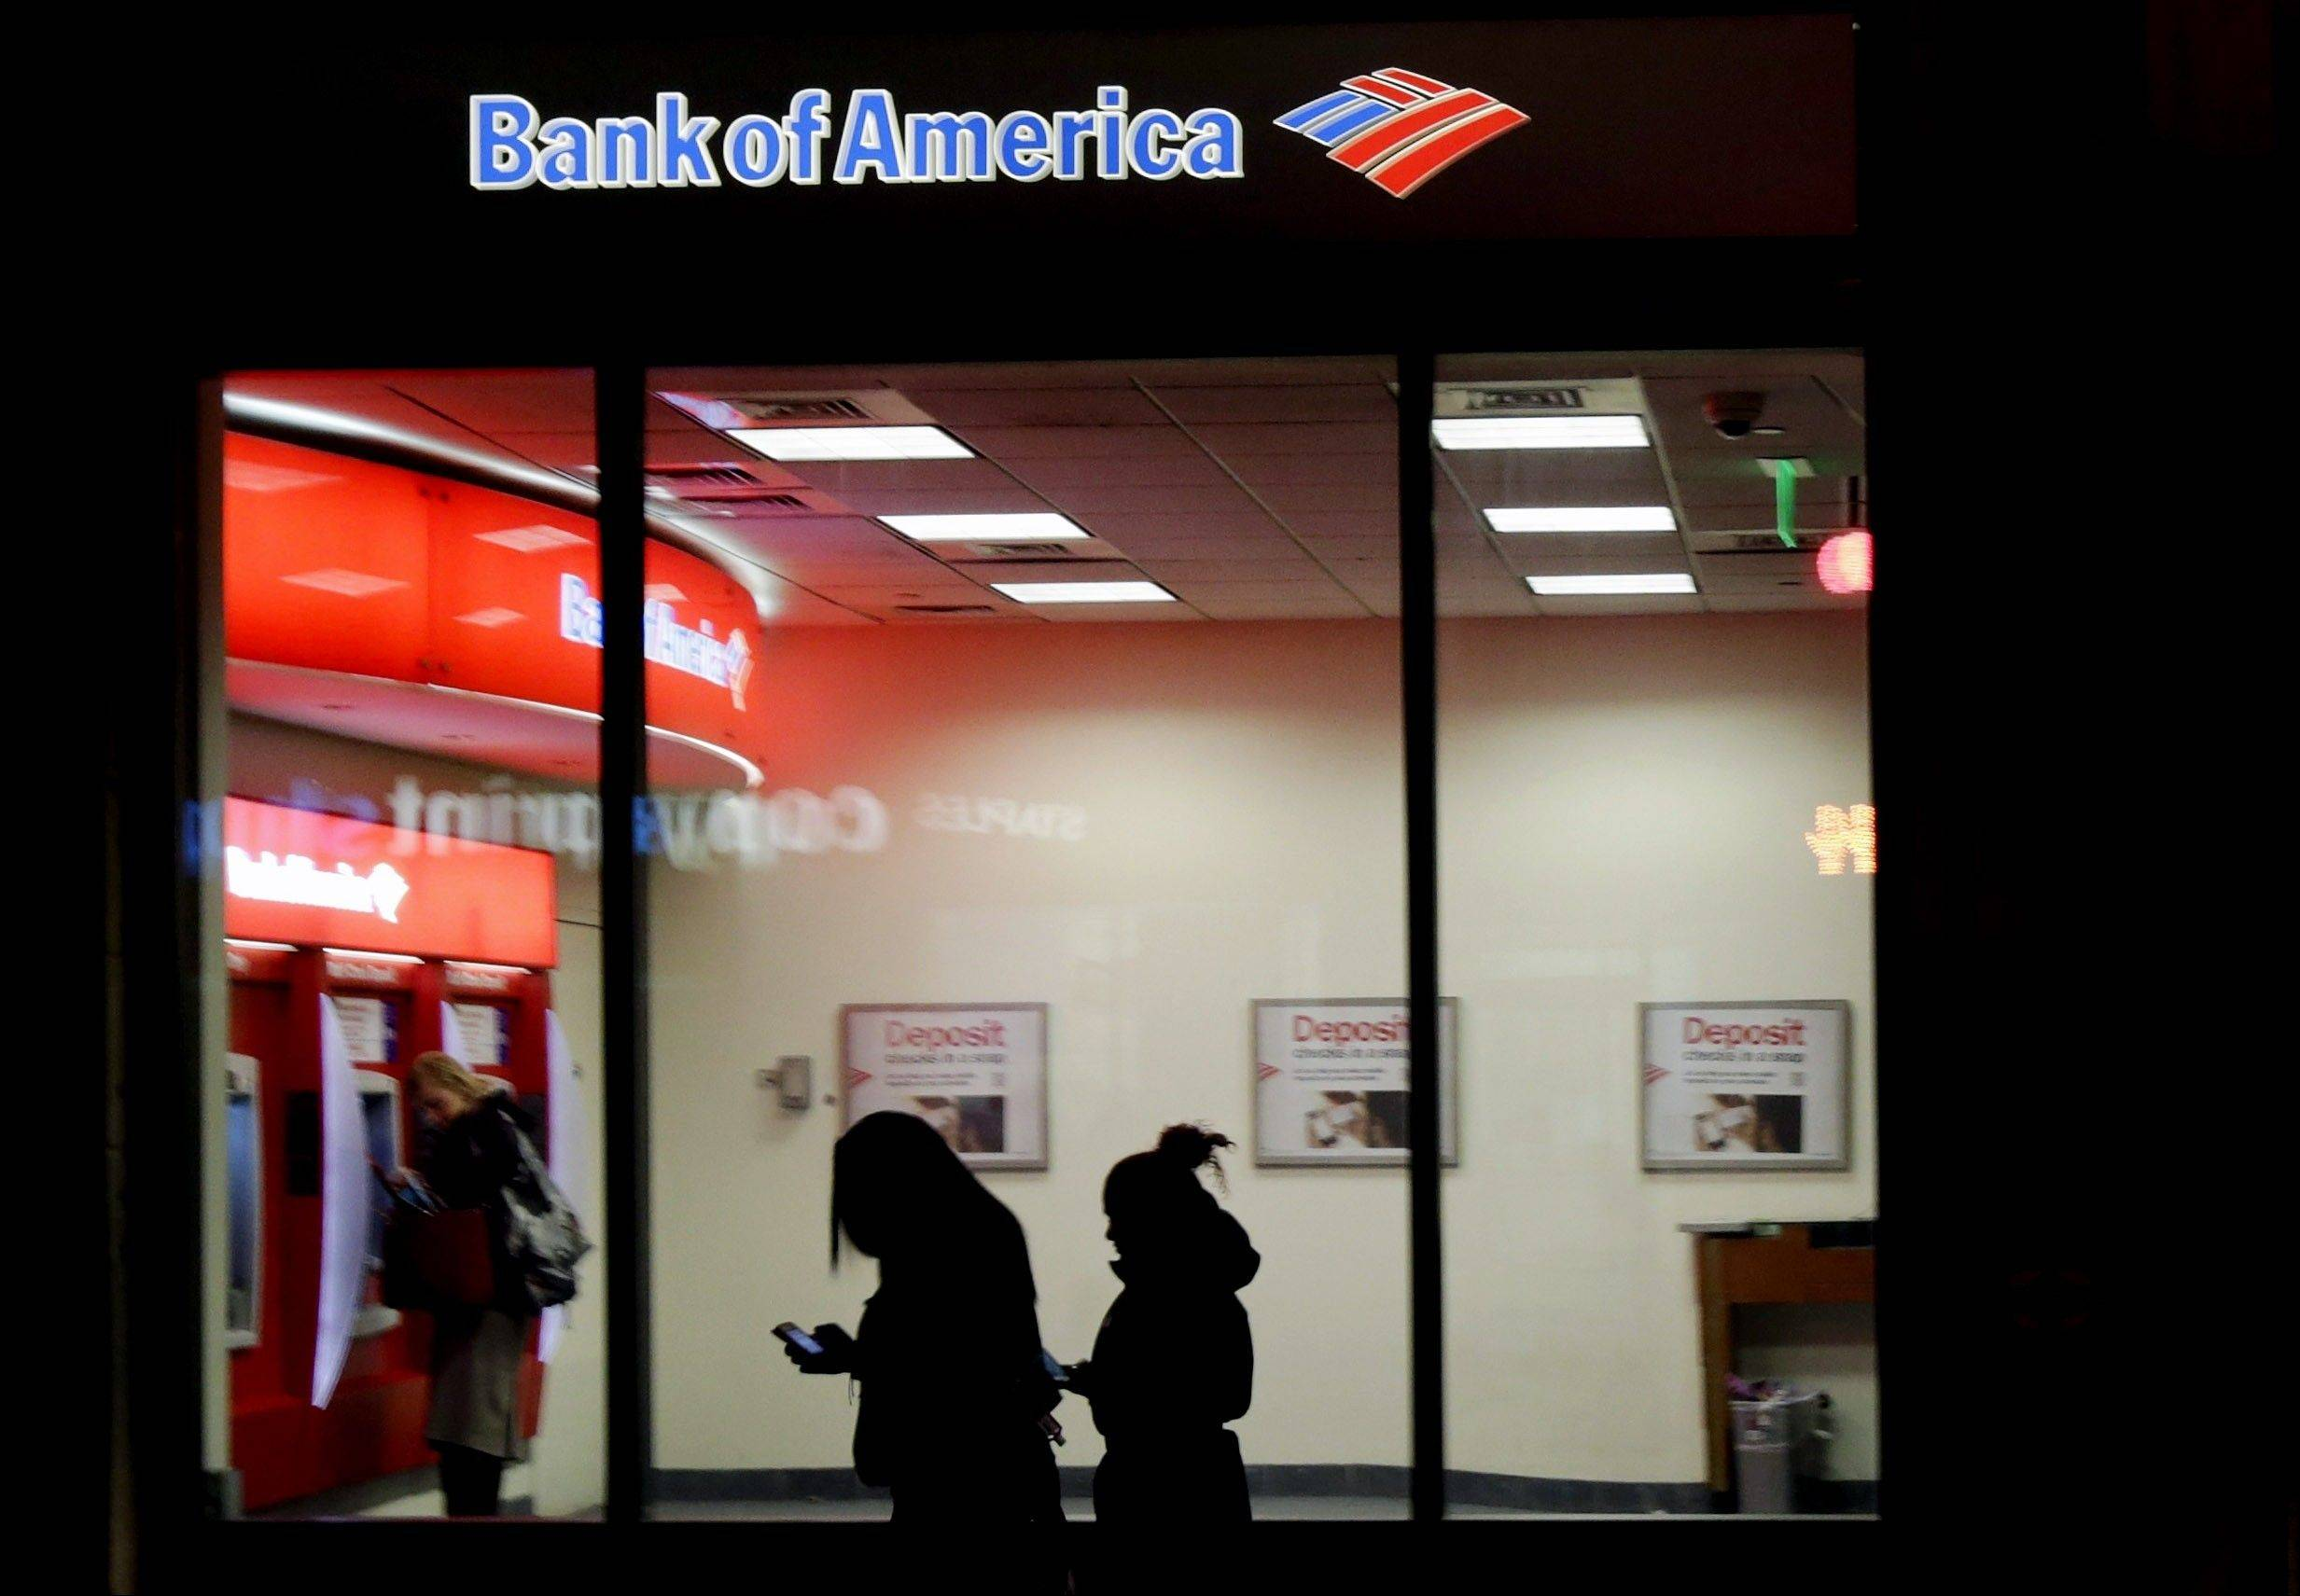 People use a Bank of America ATM in Boston. Banks including JPMorgan Chase, U.S. Bancorp and Bank of America seized on government payments for unemployment compensation as a business opportunity and pitched card programs to many states. However to cover the costs of the programs, banks have hit all card users with a plethora of new fees.